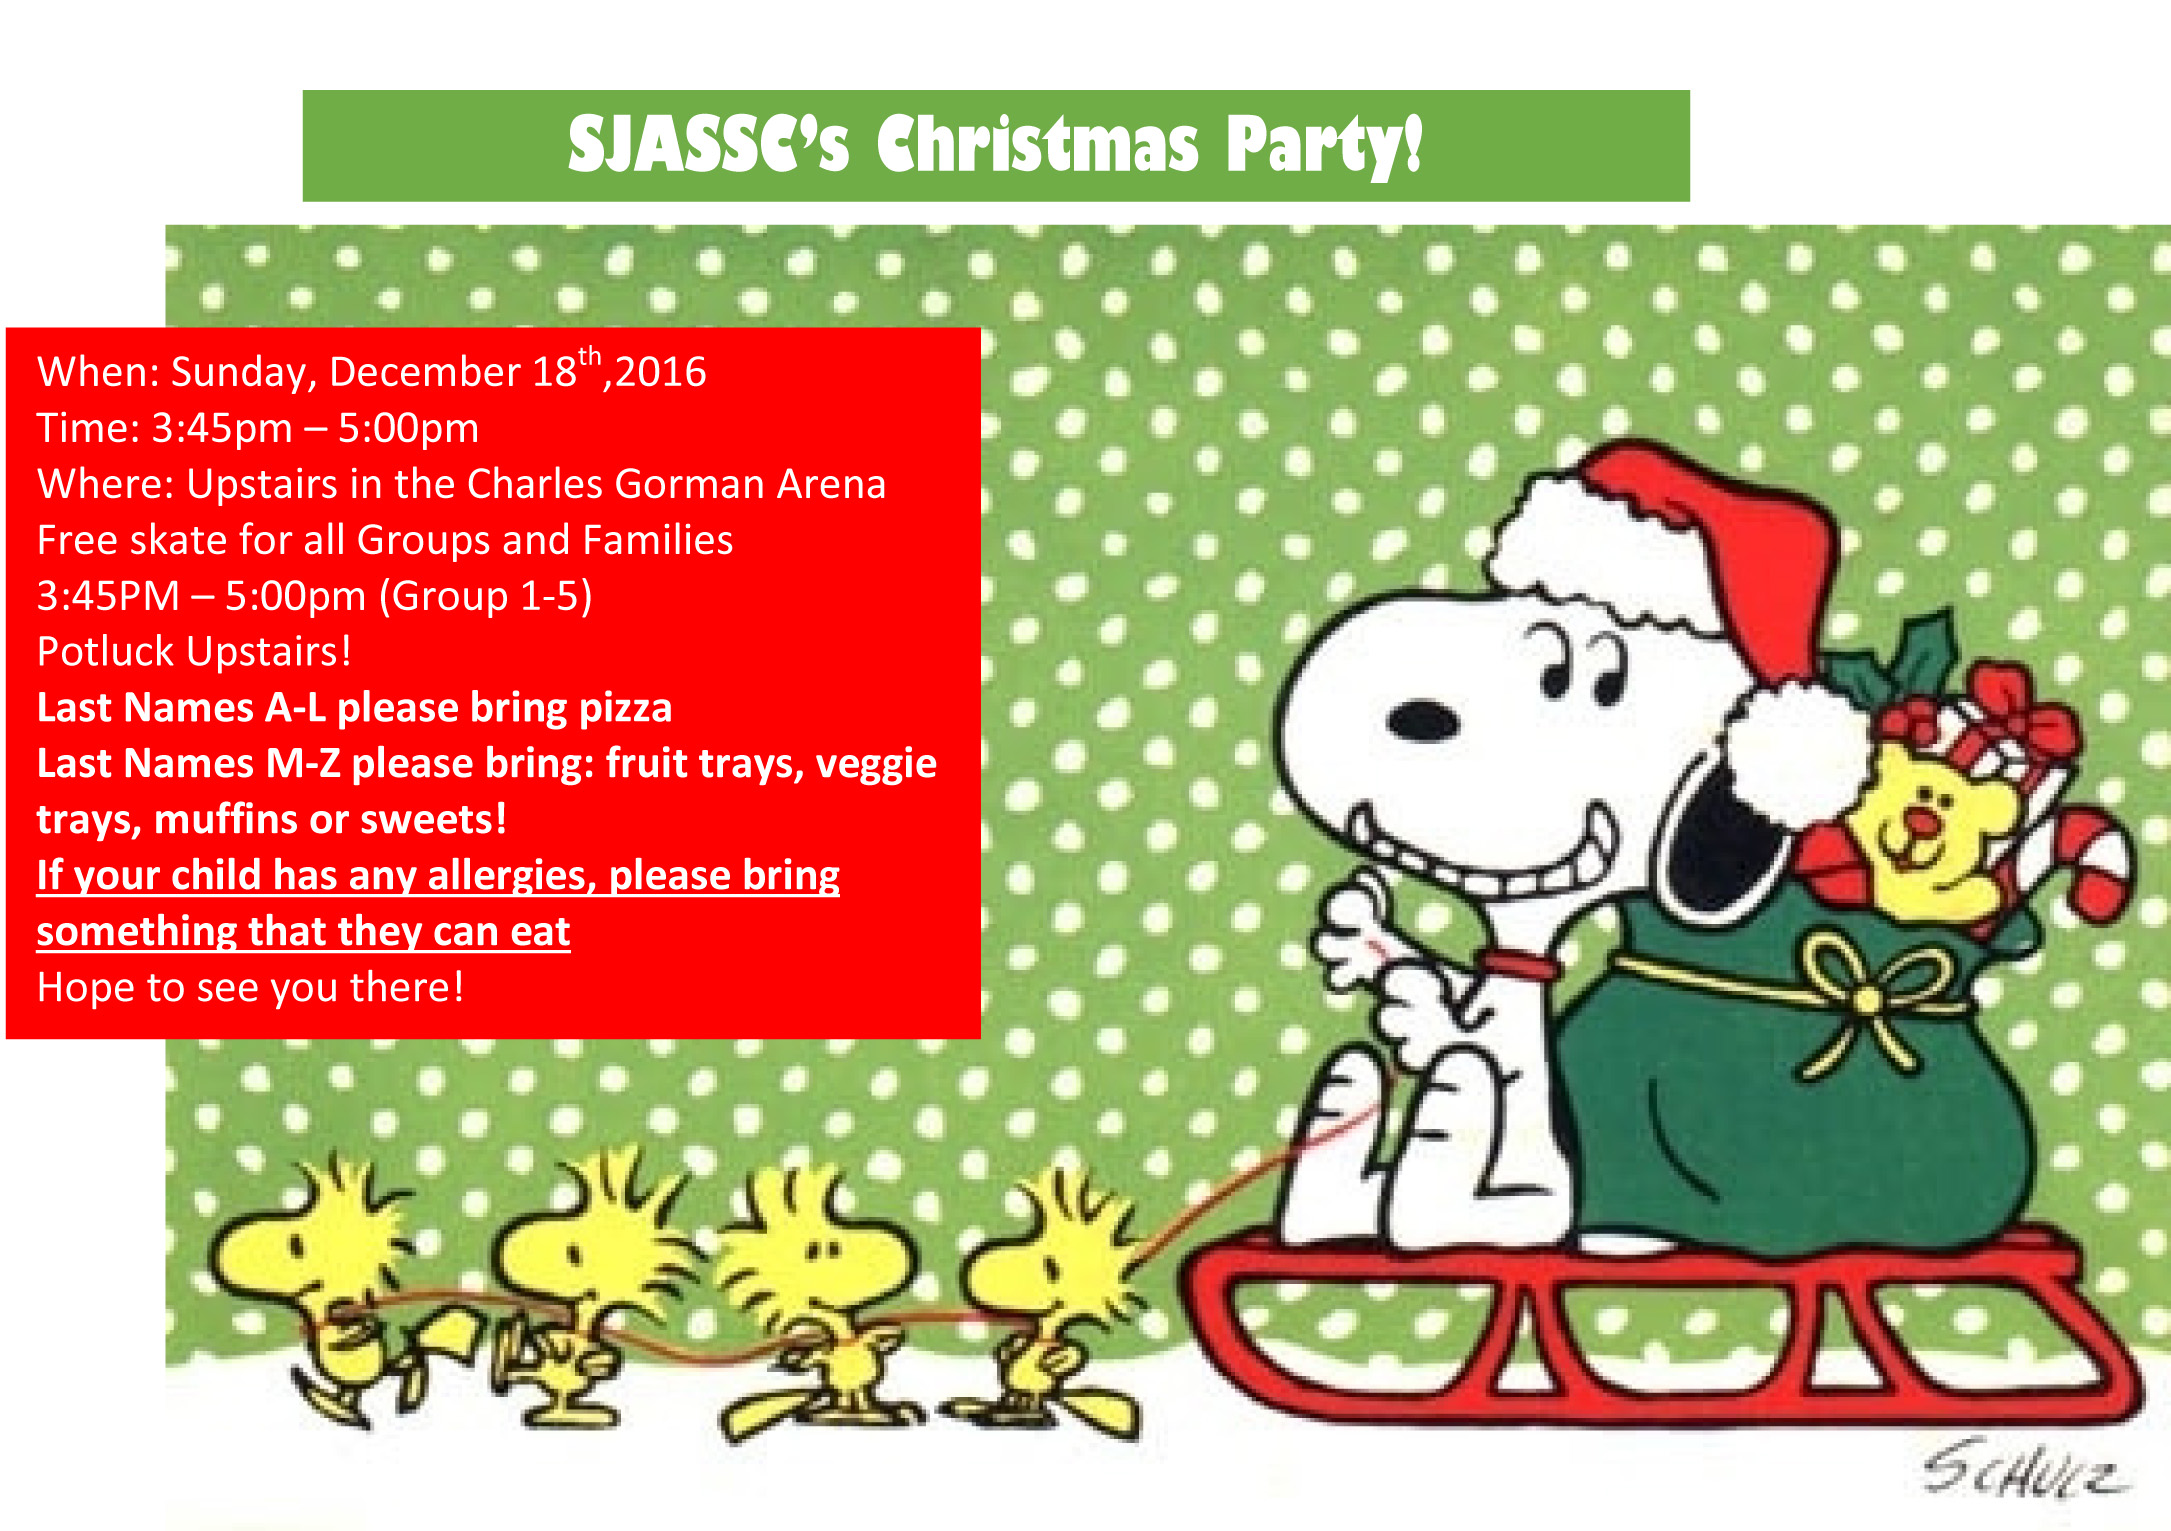 invitation to sjassc christmas party for all skaters sunday dec invitation to sjassc christmas party for all skaters sunday dec 18th